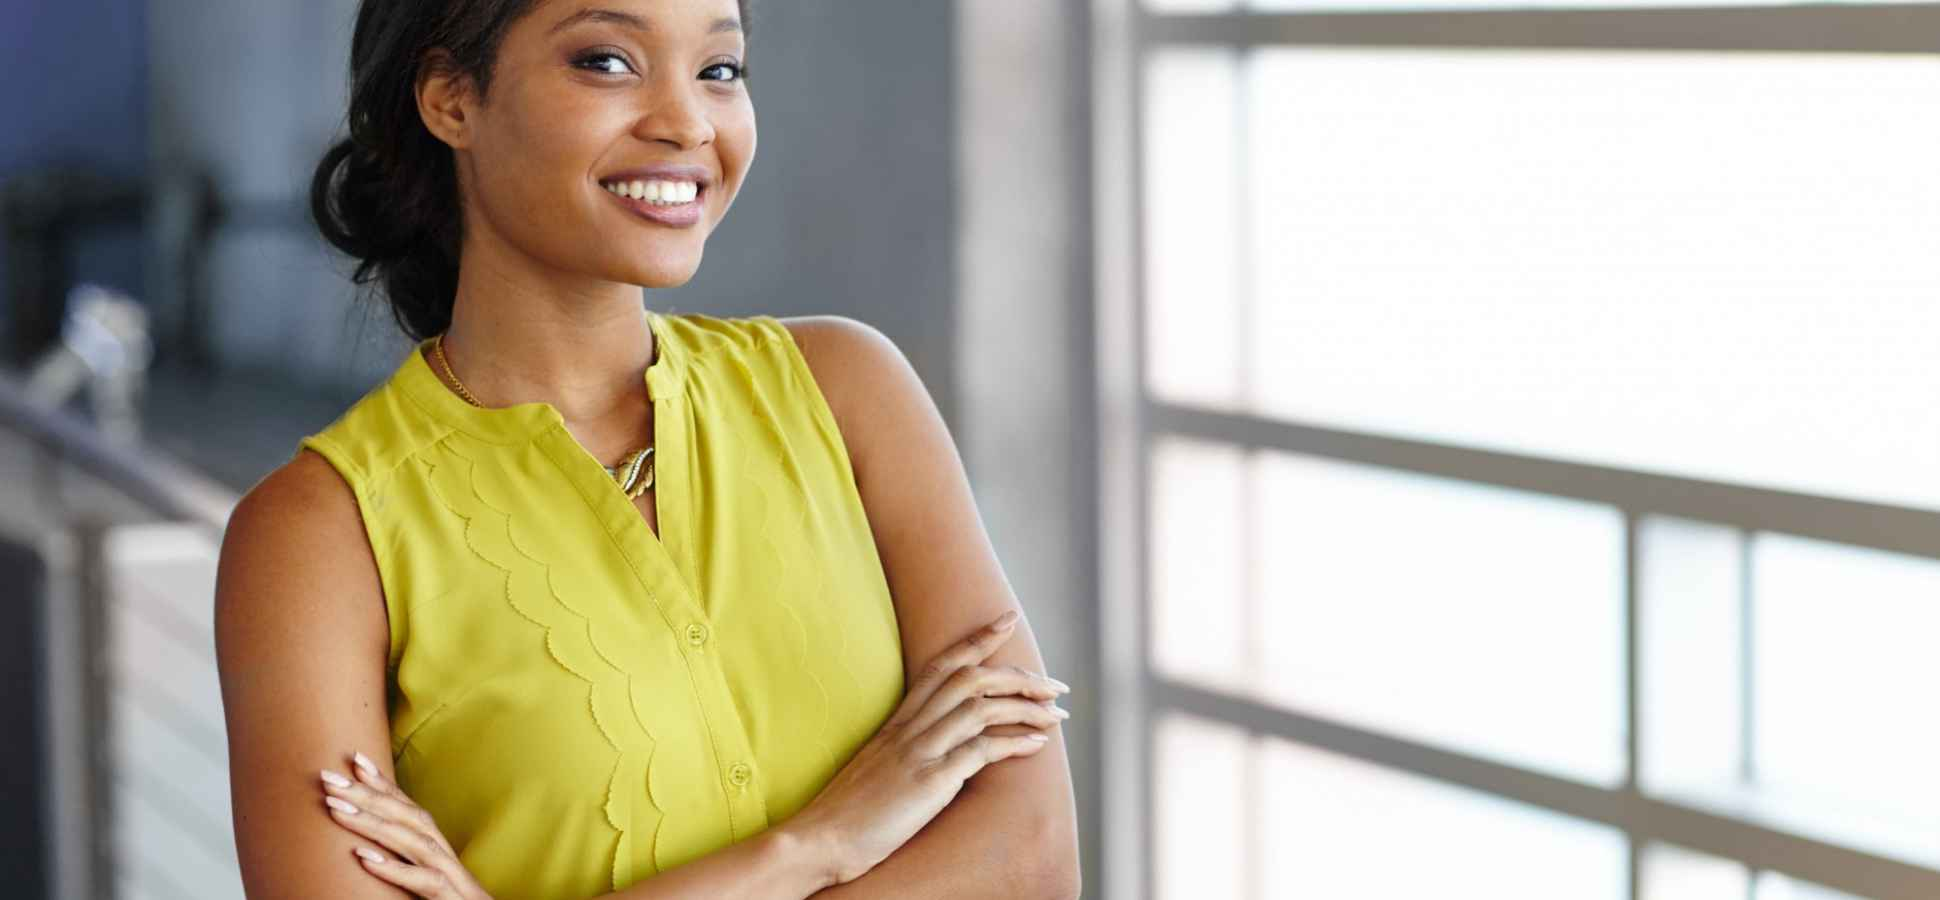 1 Crucial Ingredient That's Essential to Long-Lasting Happiness at Work